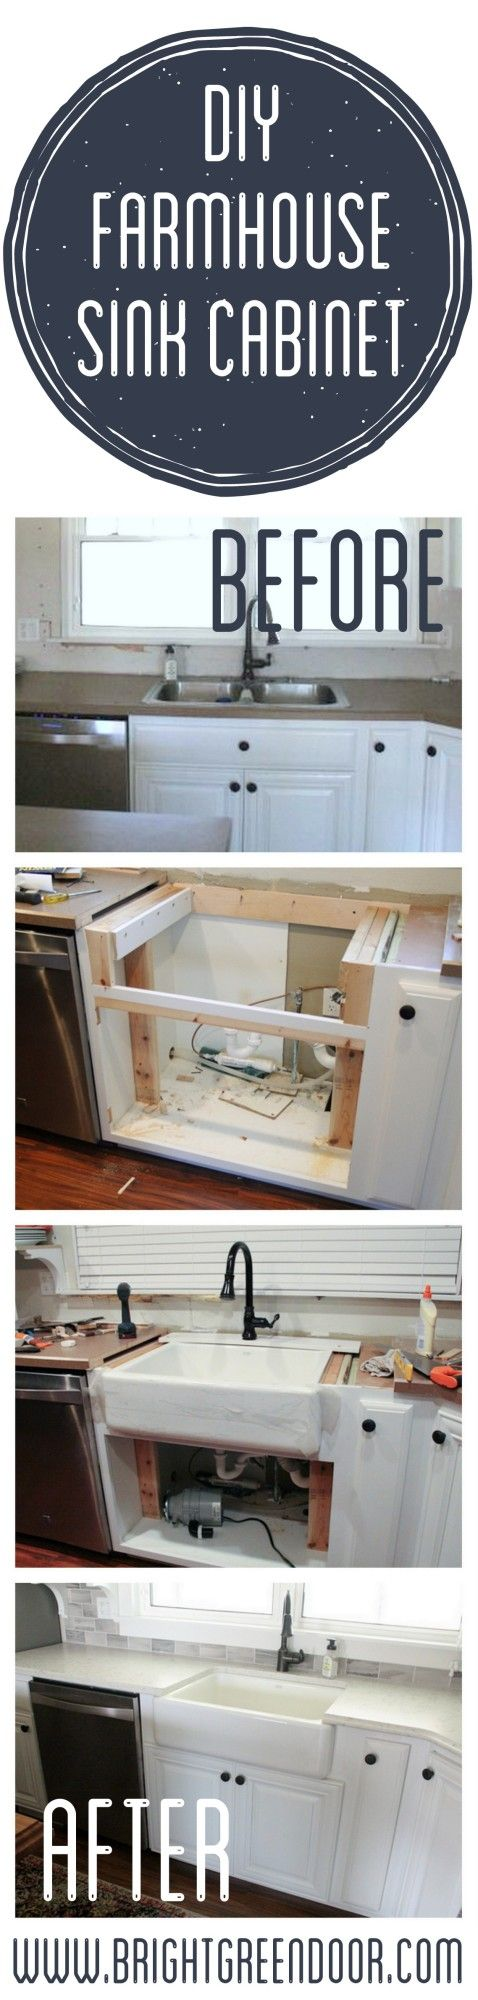 The Farmhouse Sink- Altering an existing cabinet base to fit a farmhouse sink. www.BrightGreenDoor.com